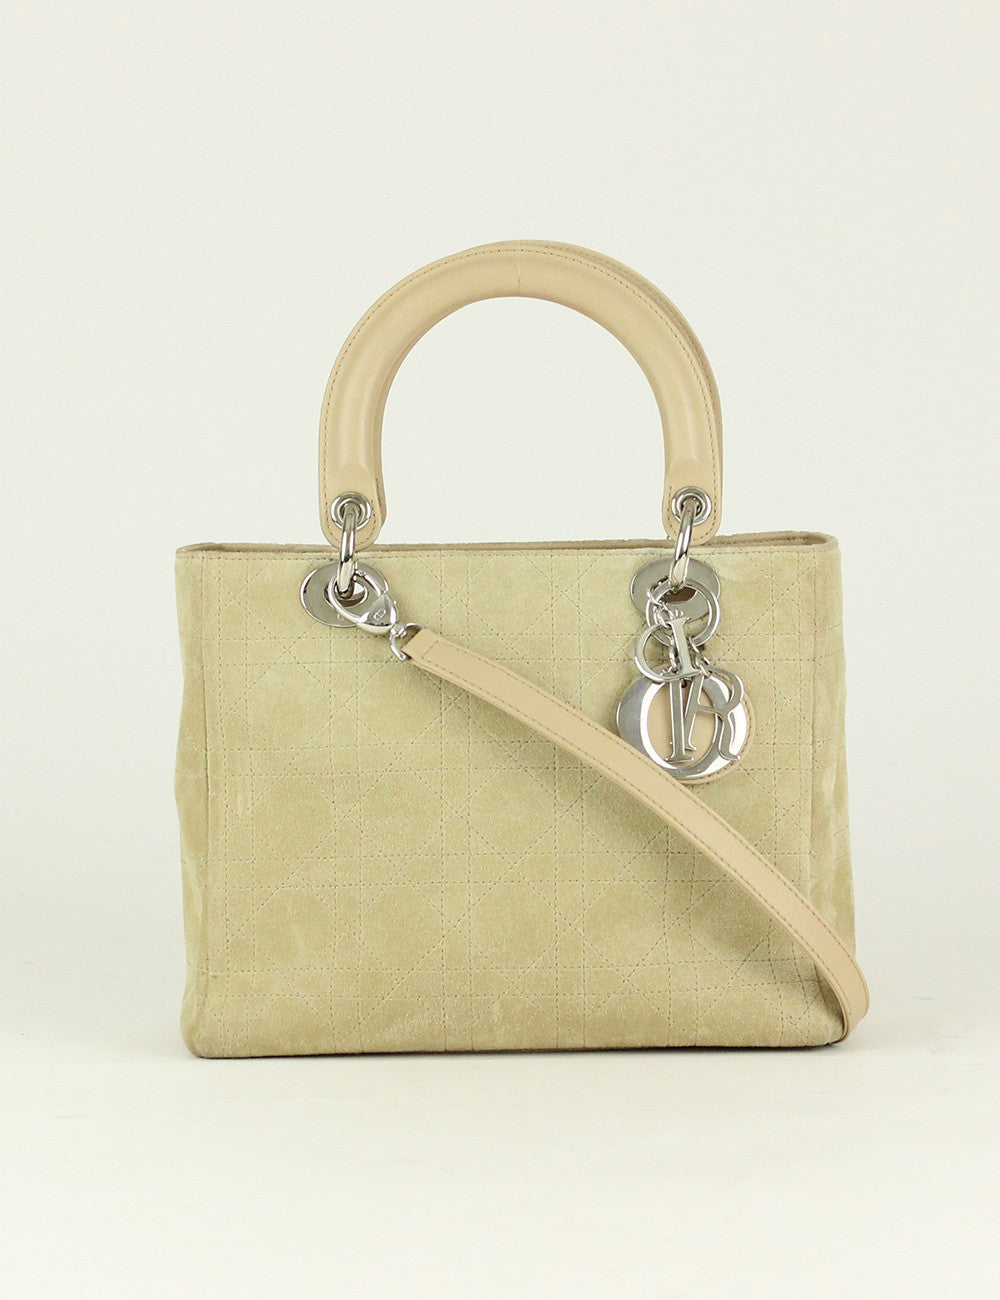 Christian Dior Lady Dior Medium Tote Bag – Brand Shop Treasures ce9412ab28c0f